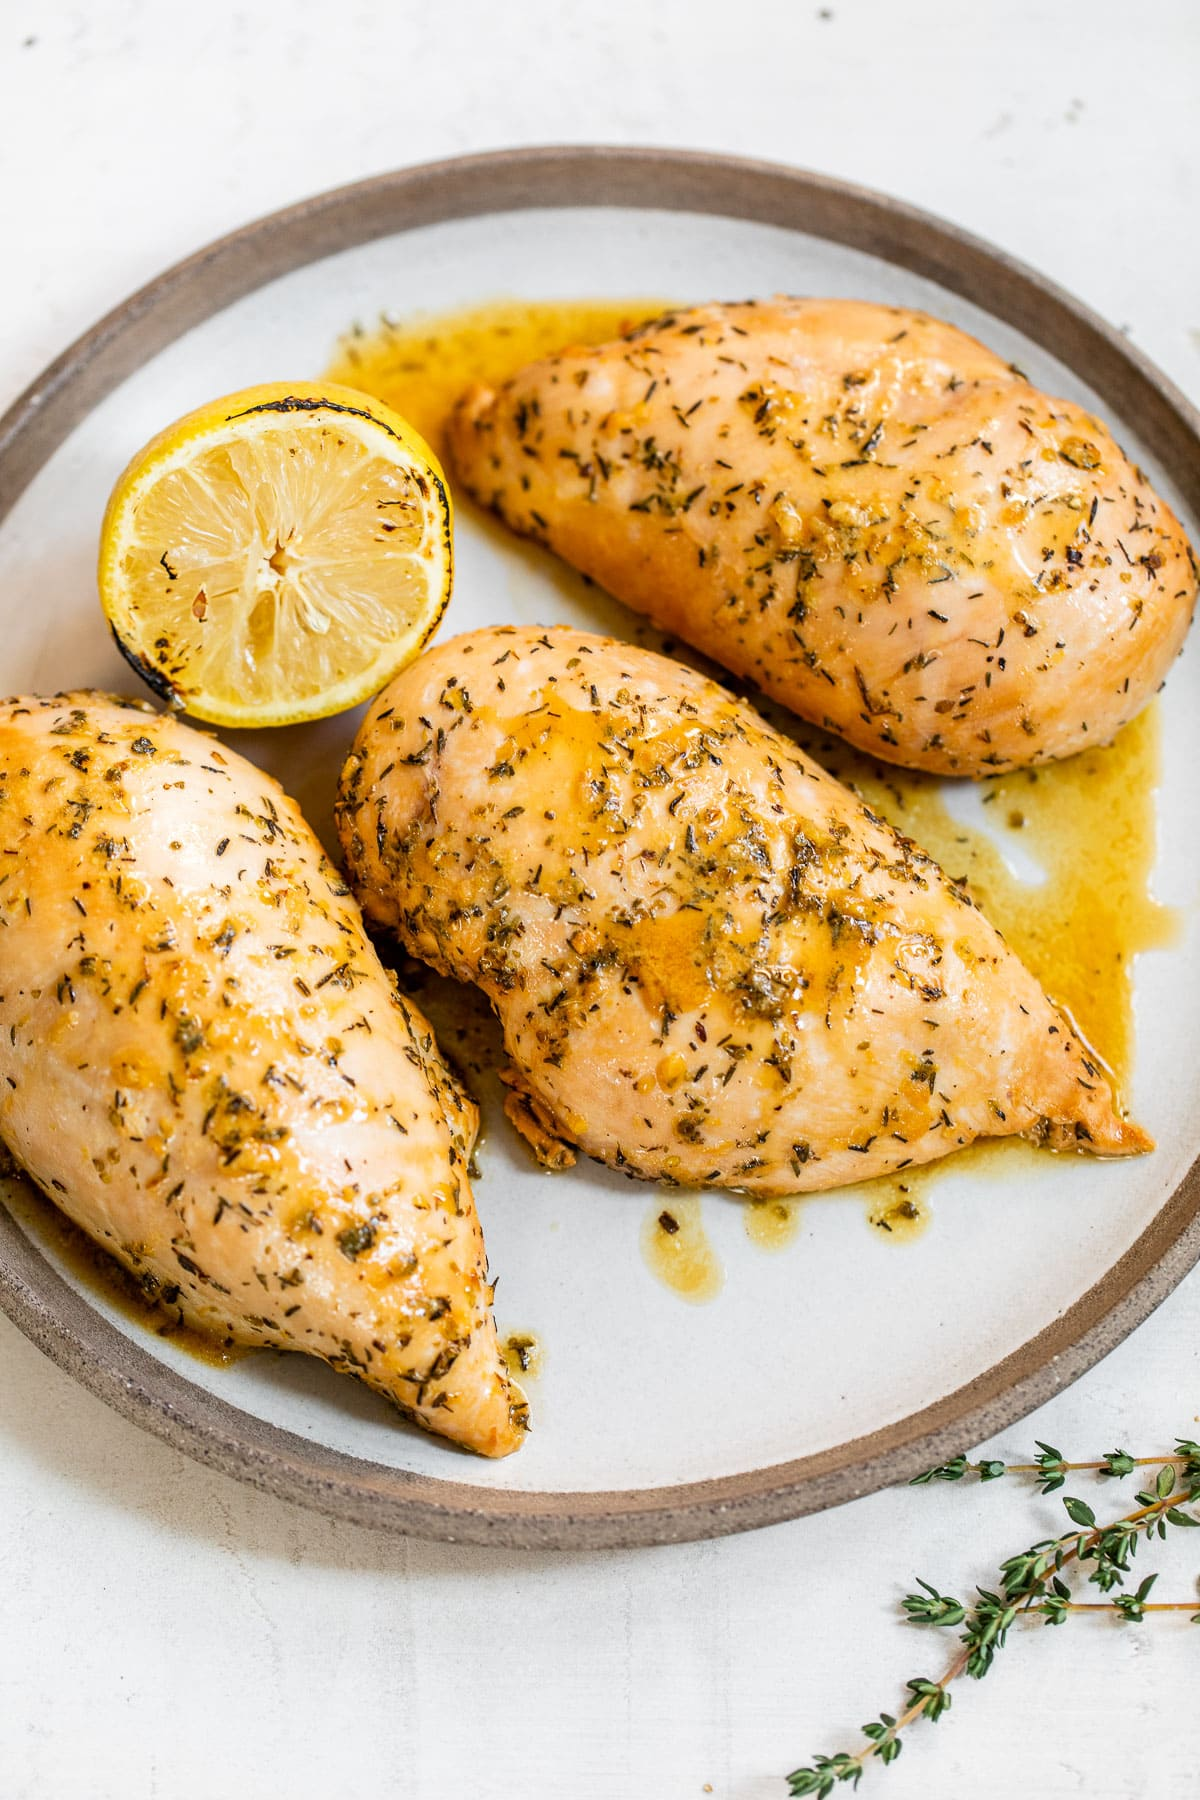 Delicious chicken marinade for baking chicken